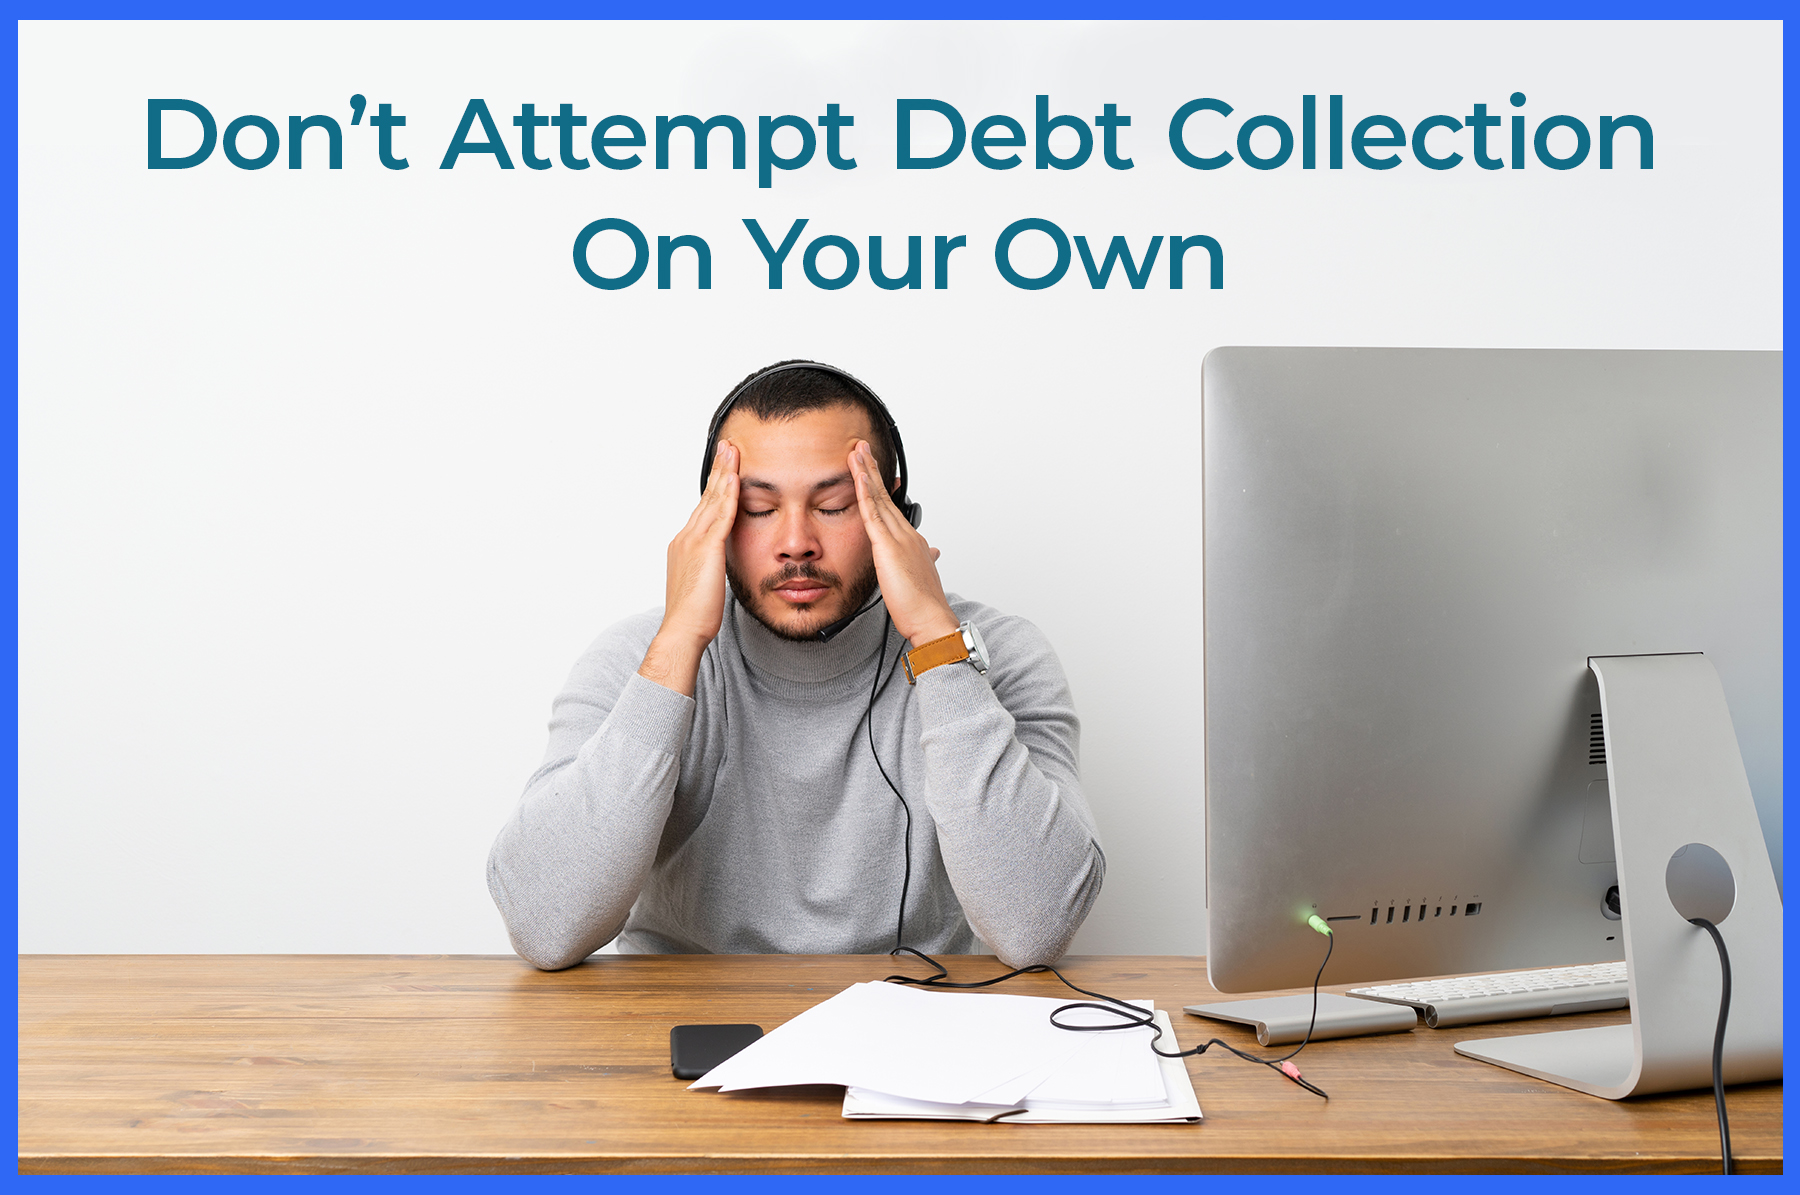 DEBT-COLLECTION-SOLUTION